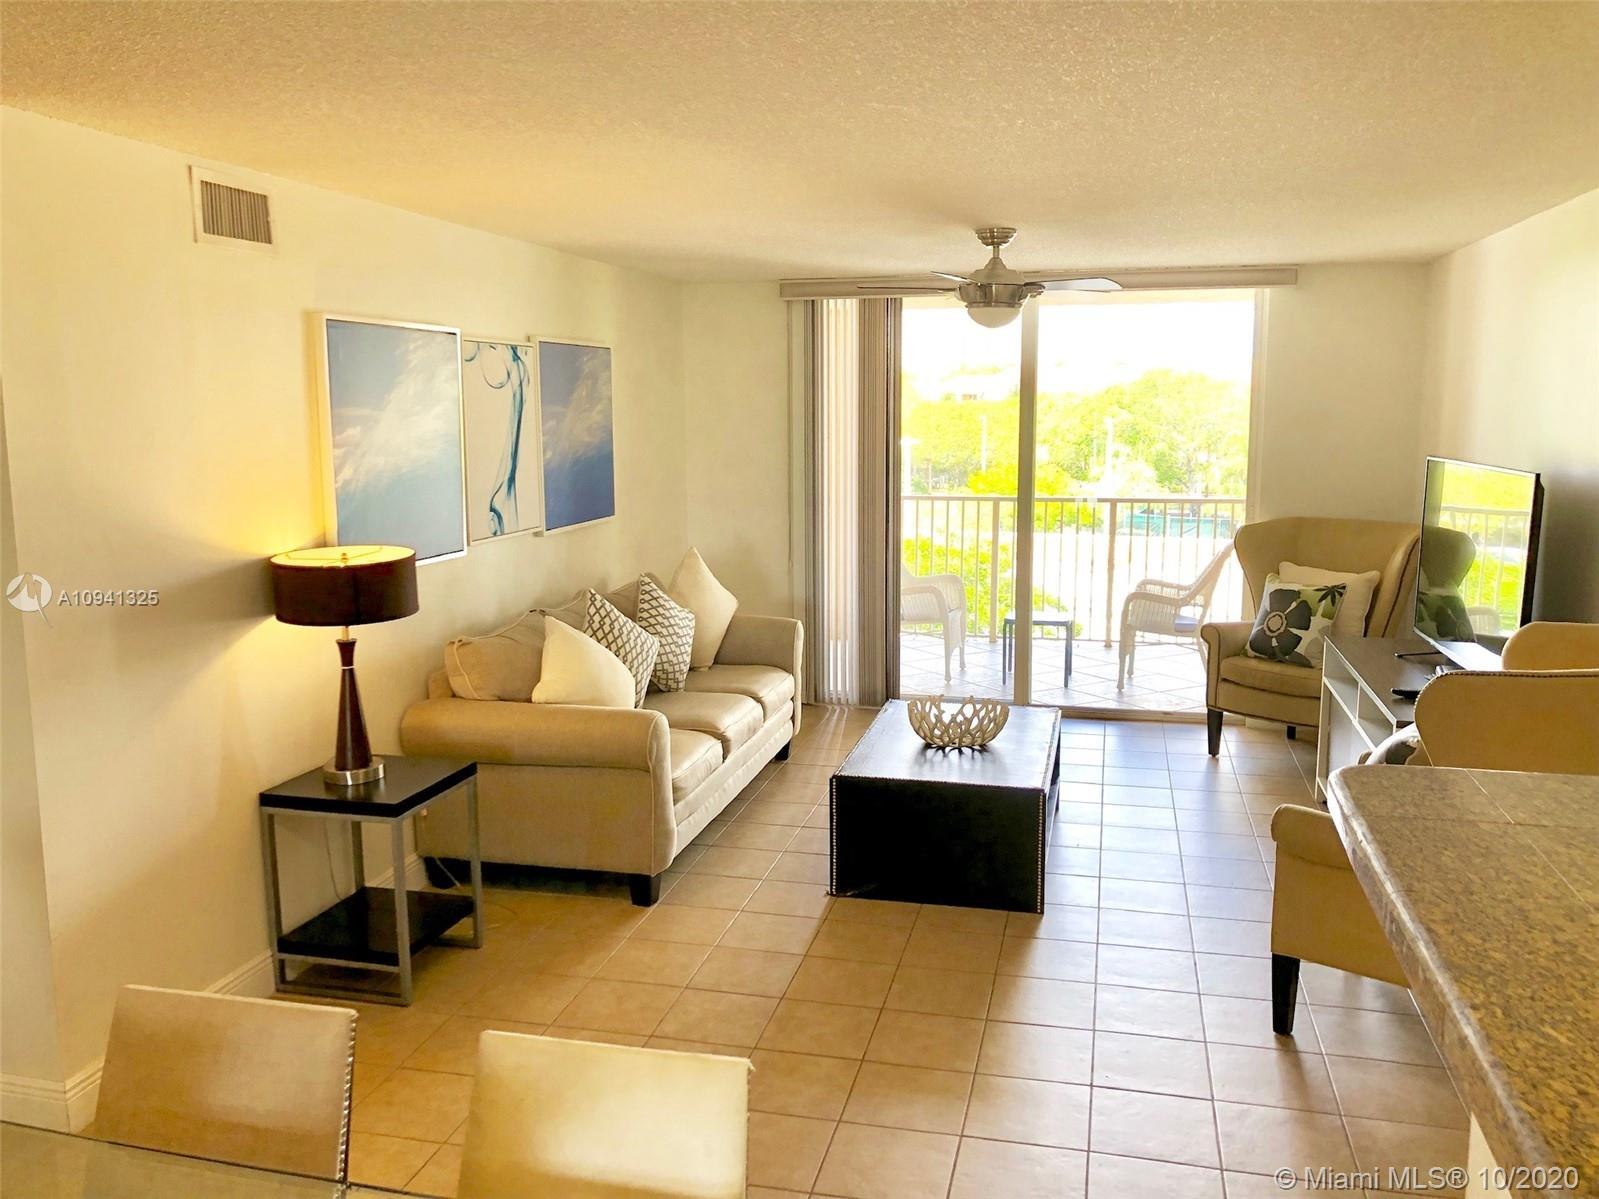 Yacht Club 6 at Aventura #6-405 - 19801 E Country Club DR #6-405, Aventura, FL 33180